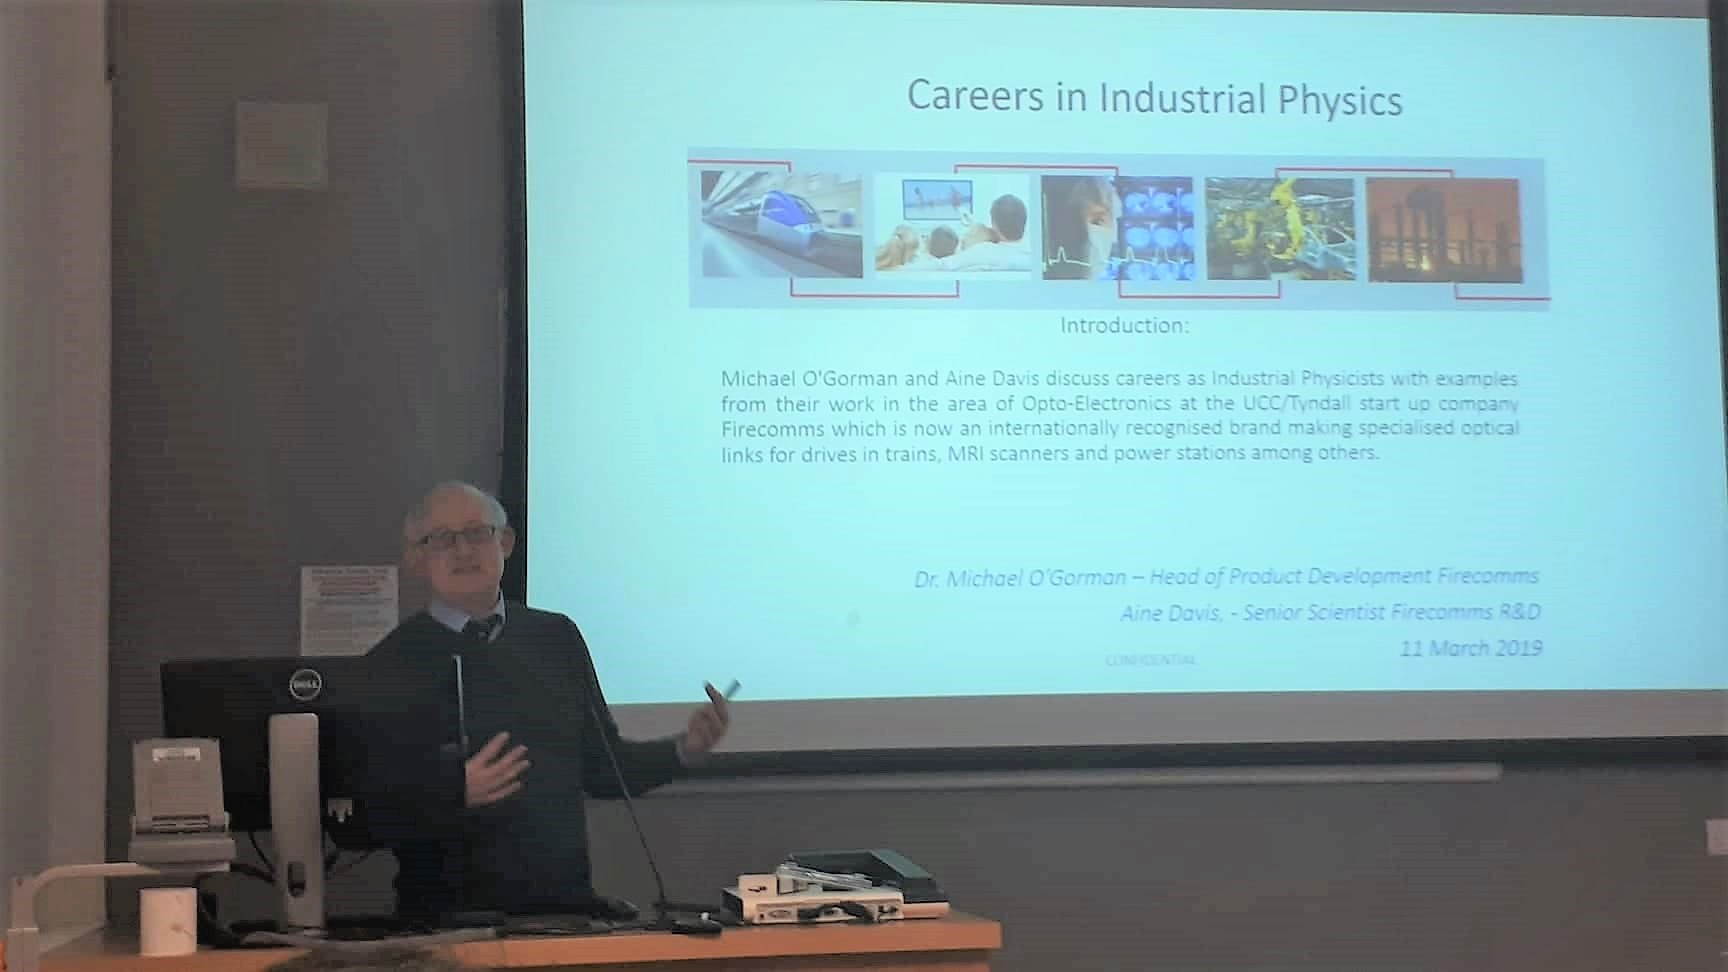 'Careers in Industrial Physics' Seminar Highlights